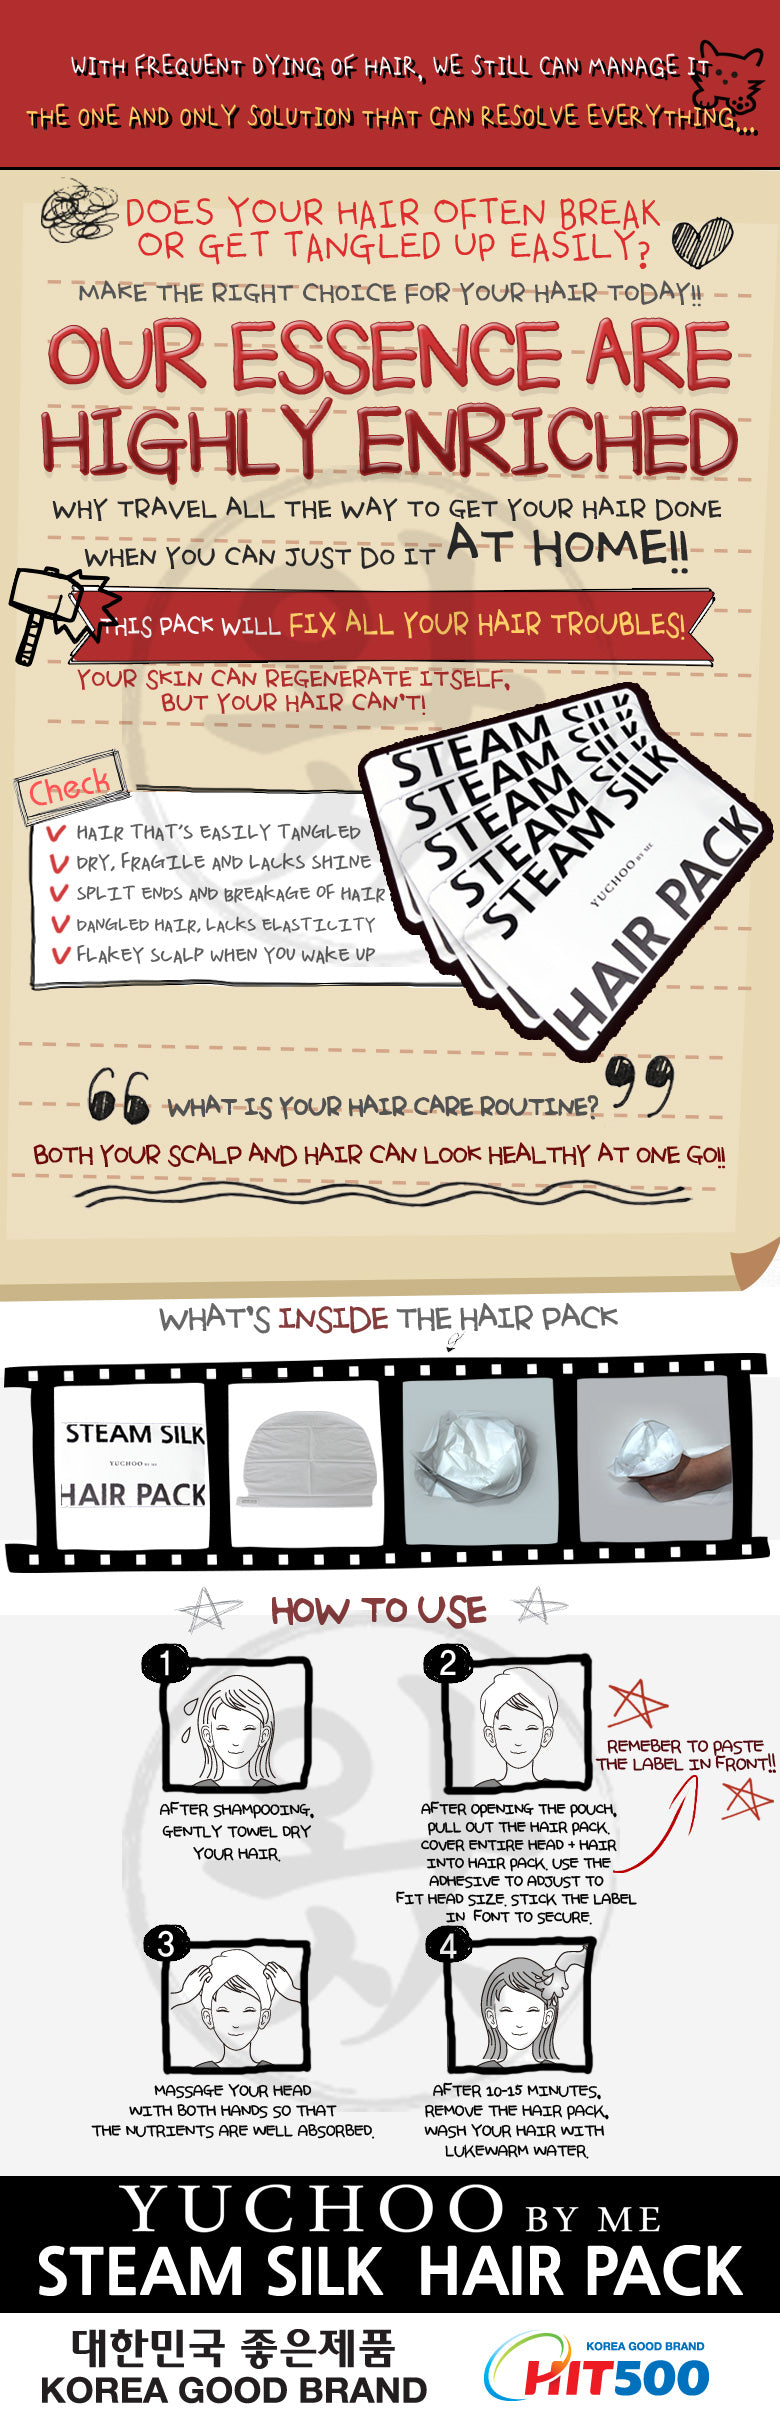 Here is a tutorial on how to use our Yuchoo Hair Pack which is capable of solving your hair problems!